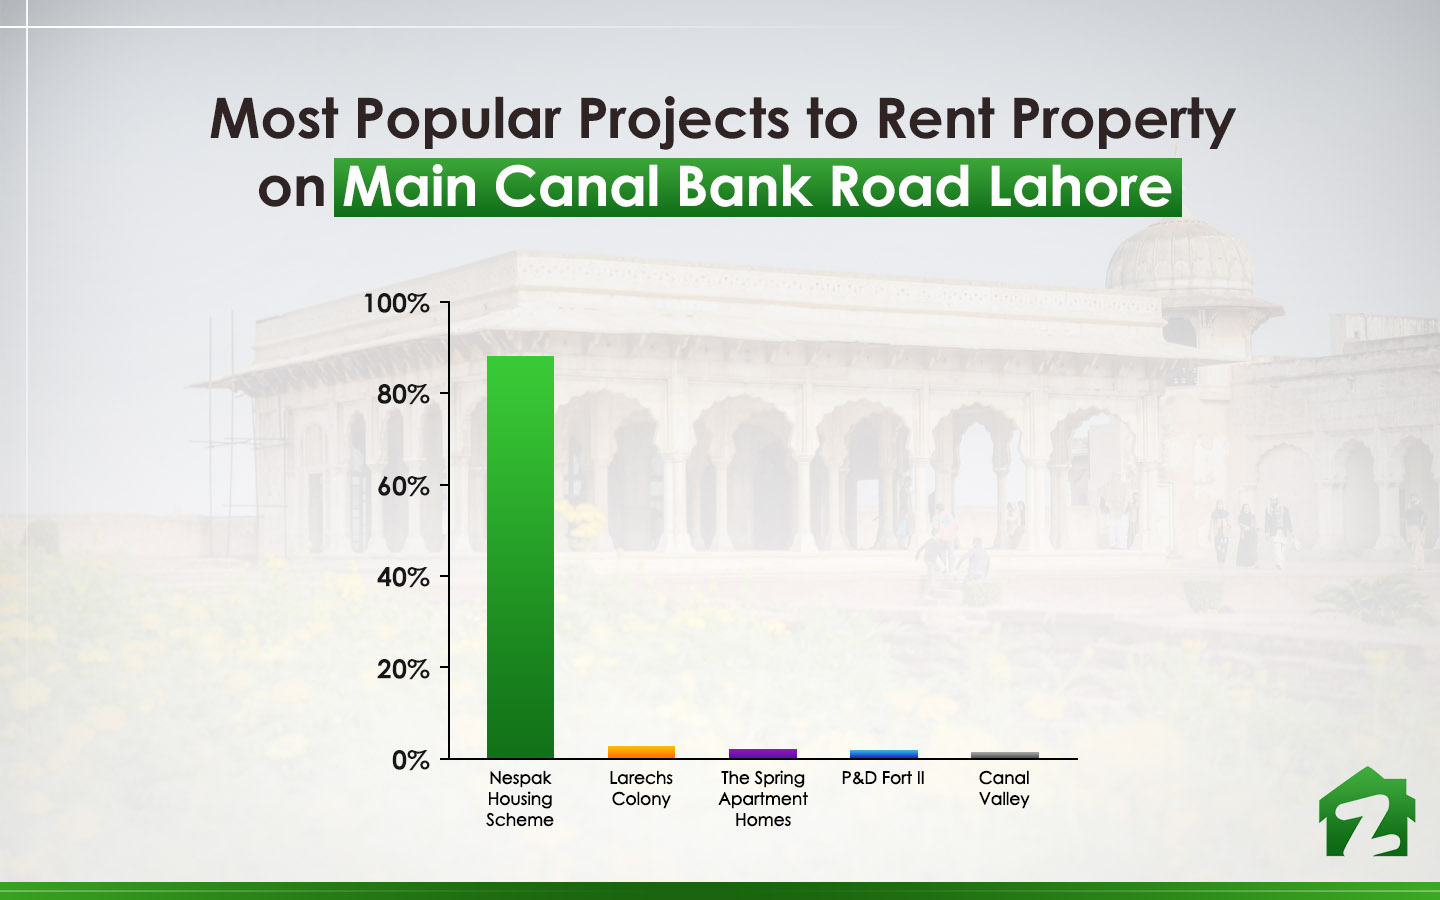 popular projects on Main Canal Bank Road Lahore